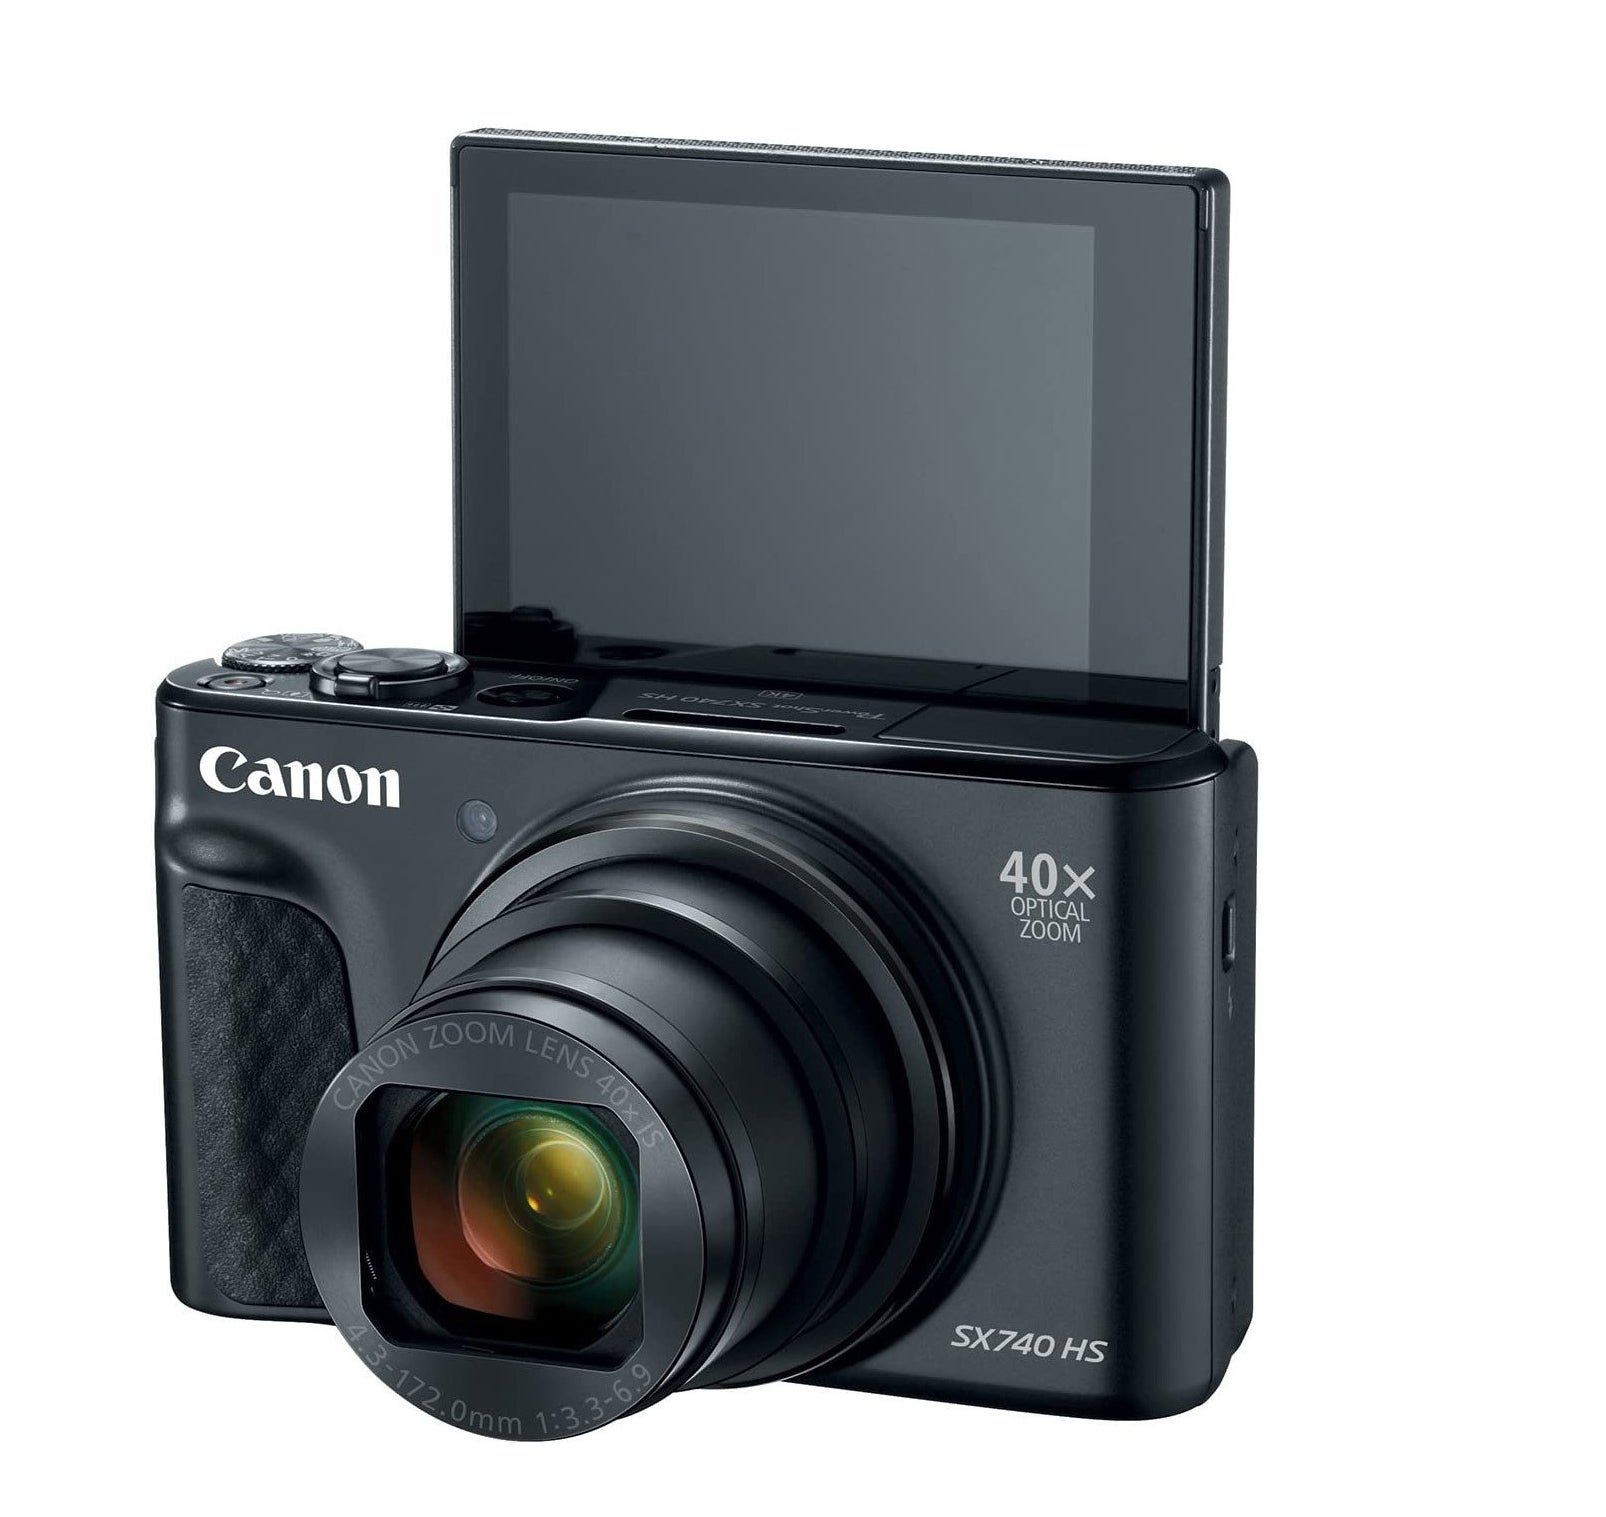 A camera with the display flipped up